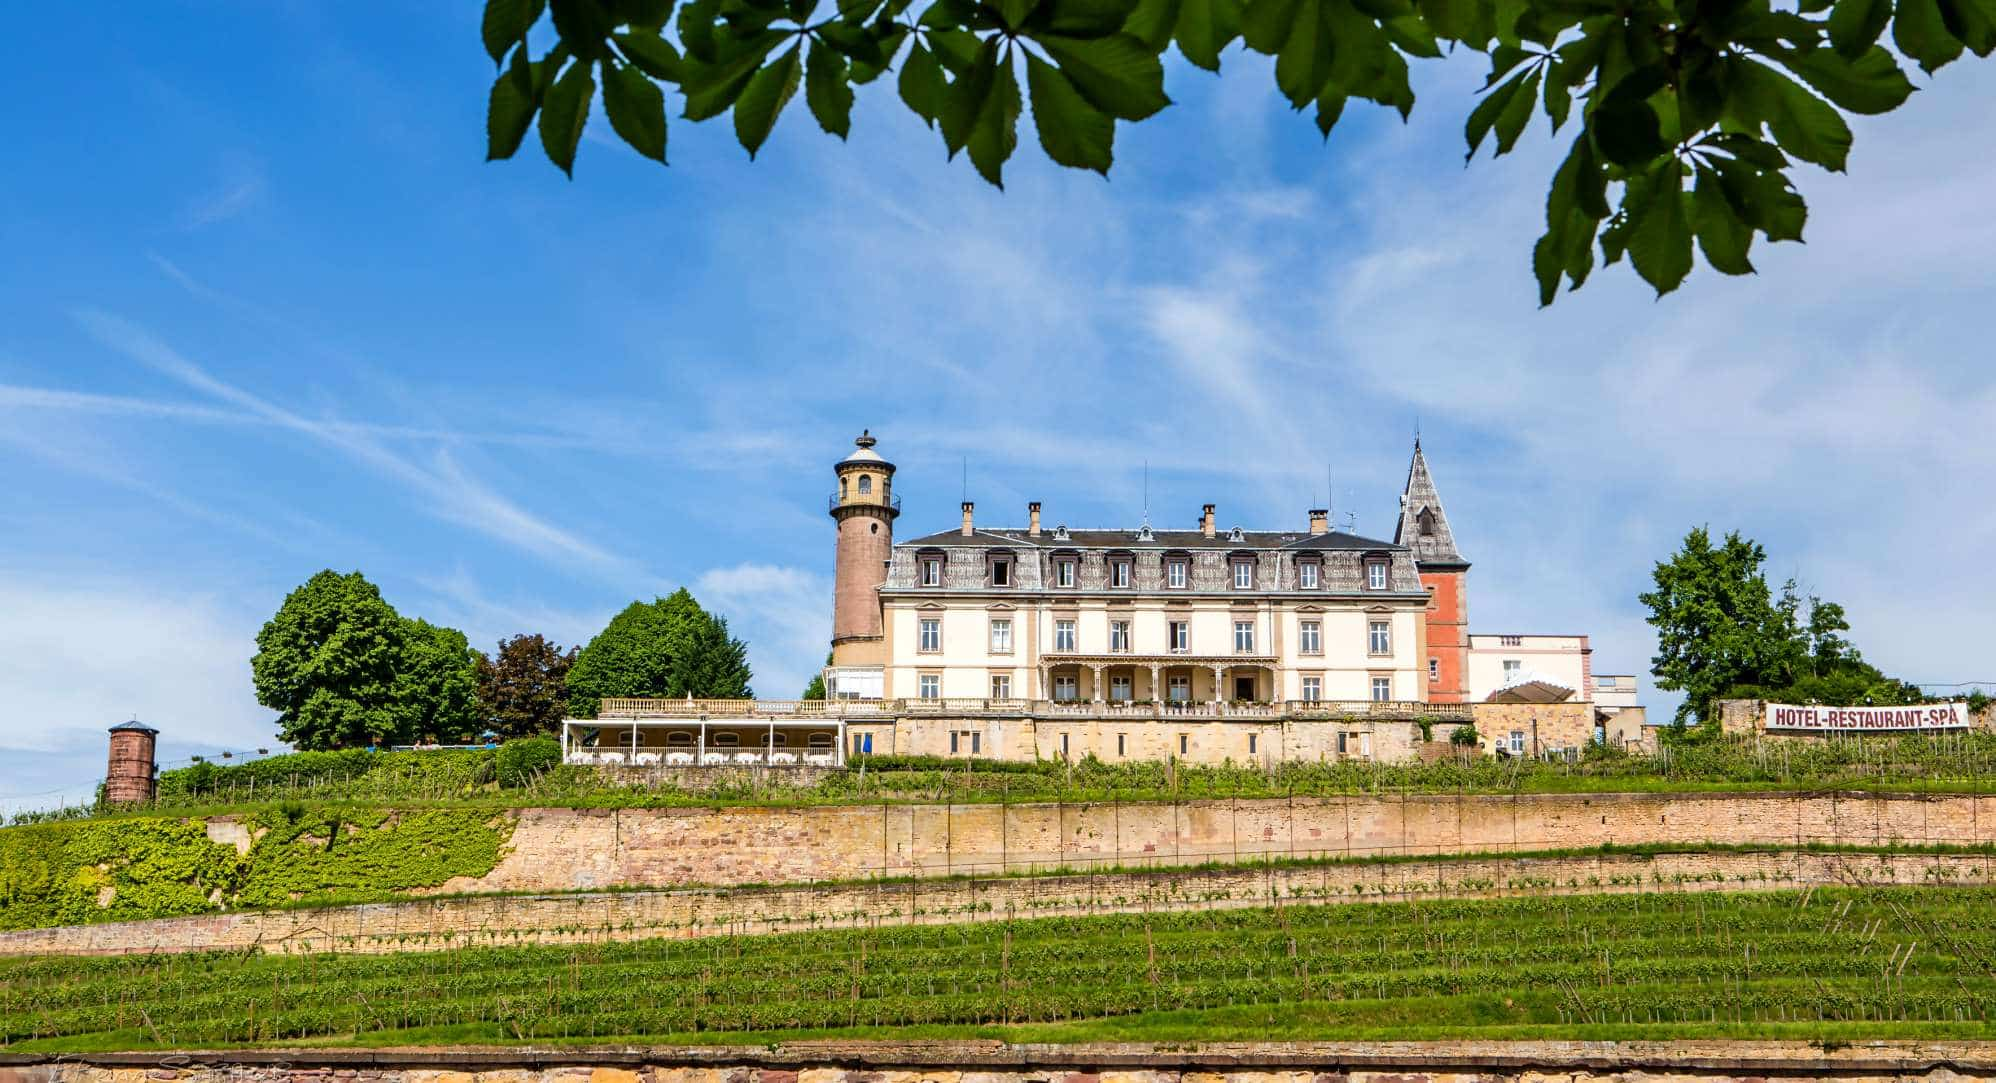 chateau hotel Isenbourg Alsace